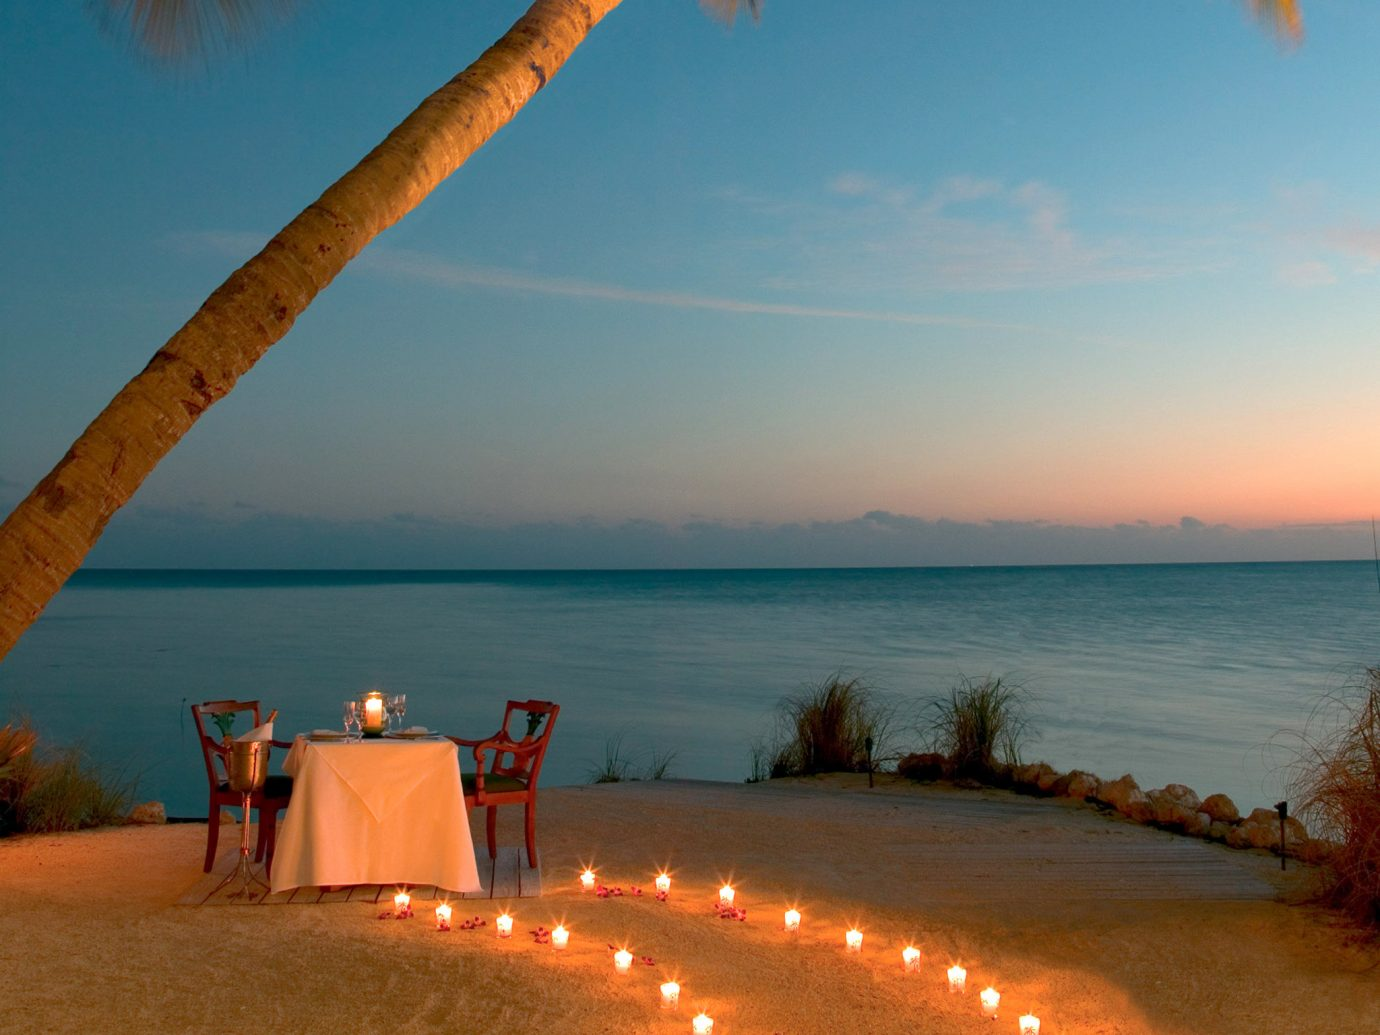 Beach Beachfront Dining Drink Eat Hotels Island Outdoors Resort Romance Romantic Scenic views Sunset Trip Ideas Waterfront sky water outdoor Sea Ocean horizon Coast vacation morning evening sand dusk sunrise Nature sunlight arecales cape orange tree plant shore